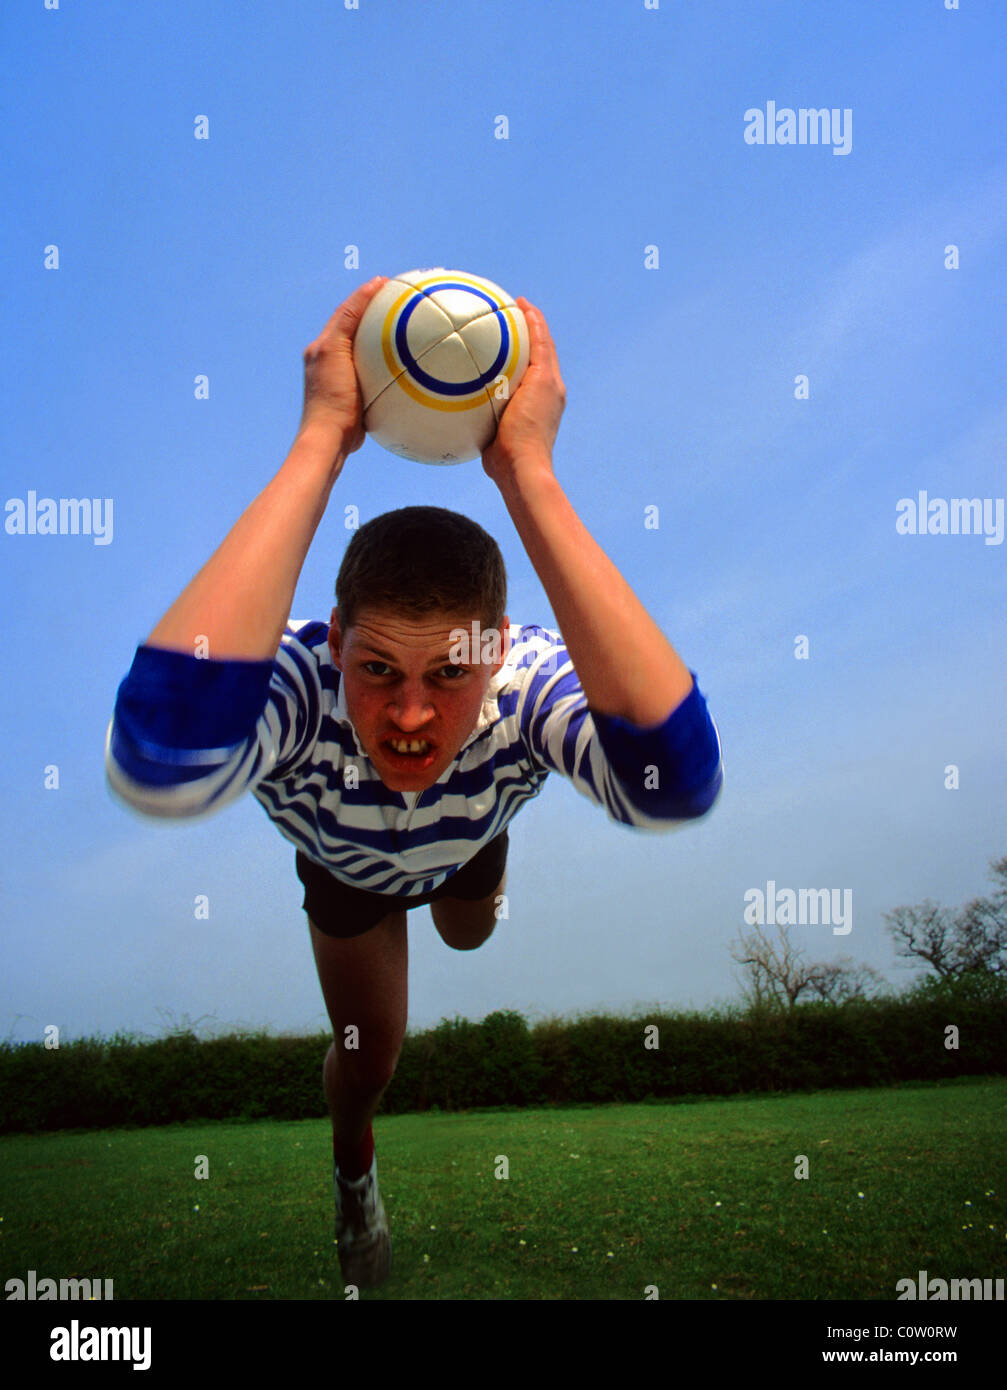 rugby player diving towards try-line to score try uk - Stock Image